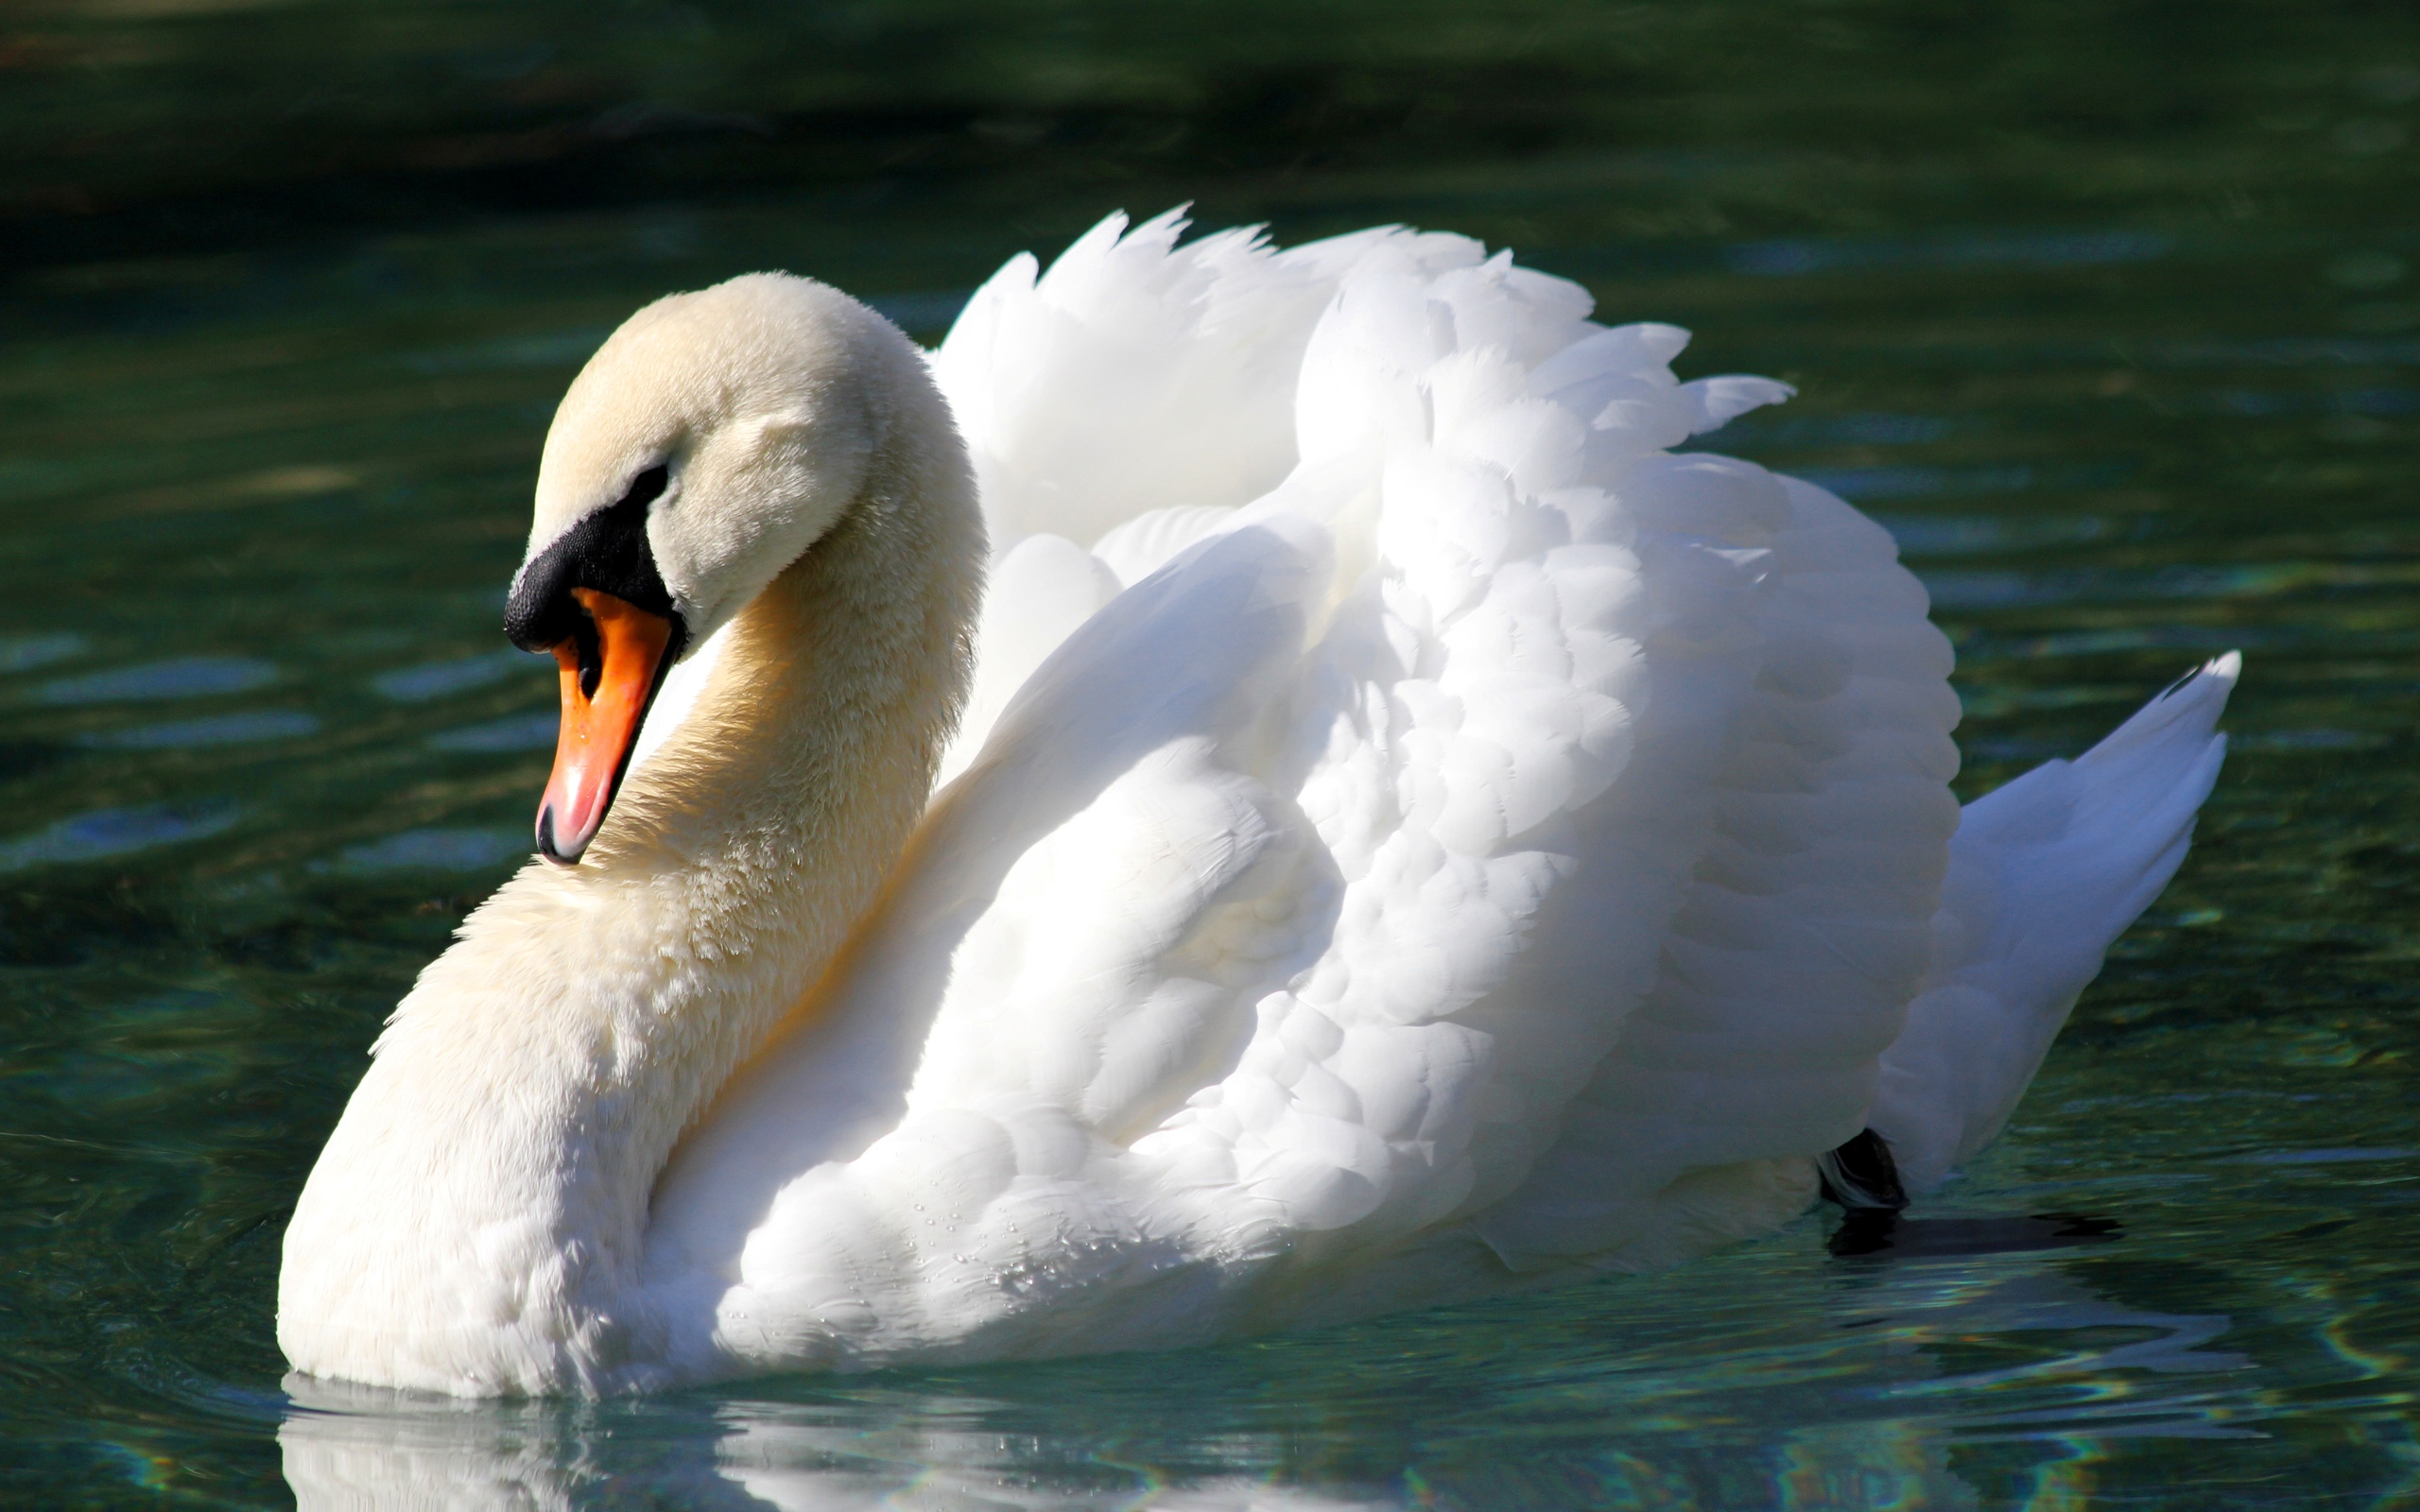 What Is The Wallpaper On The Iphone X Mute Swan Full Hd Wallpaper And Background Image